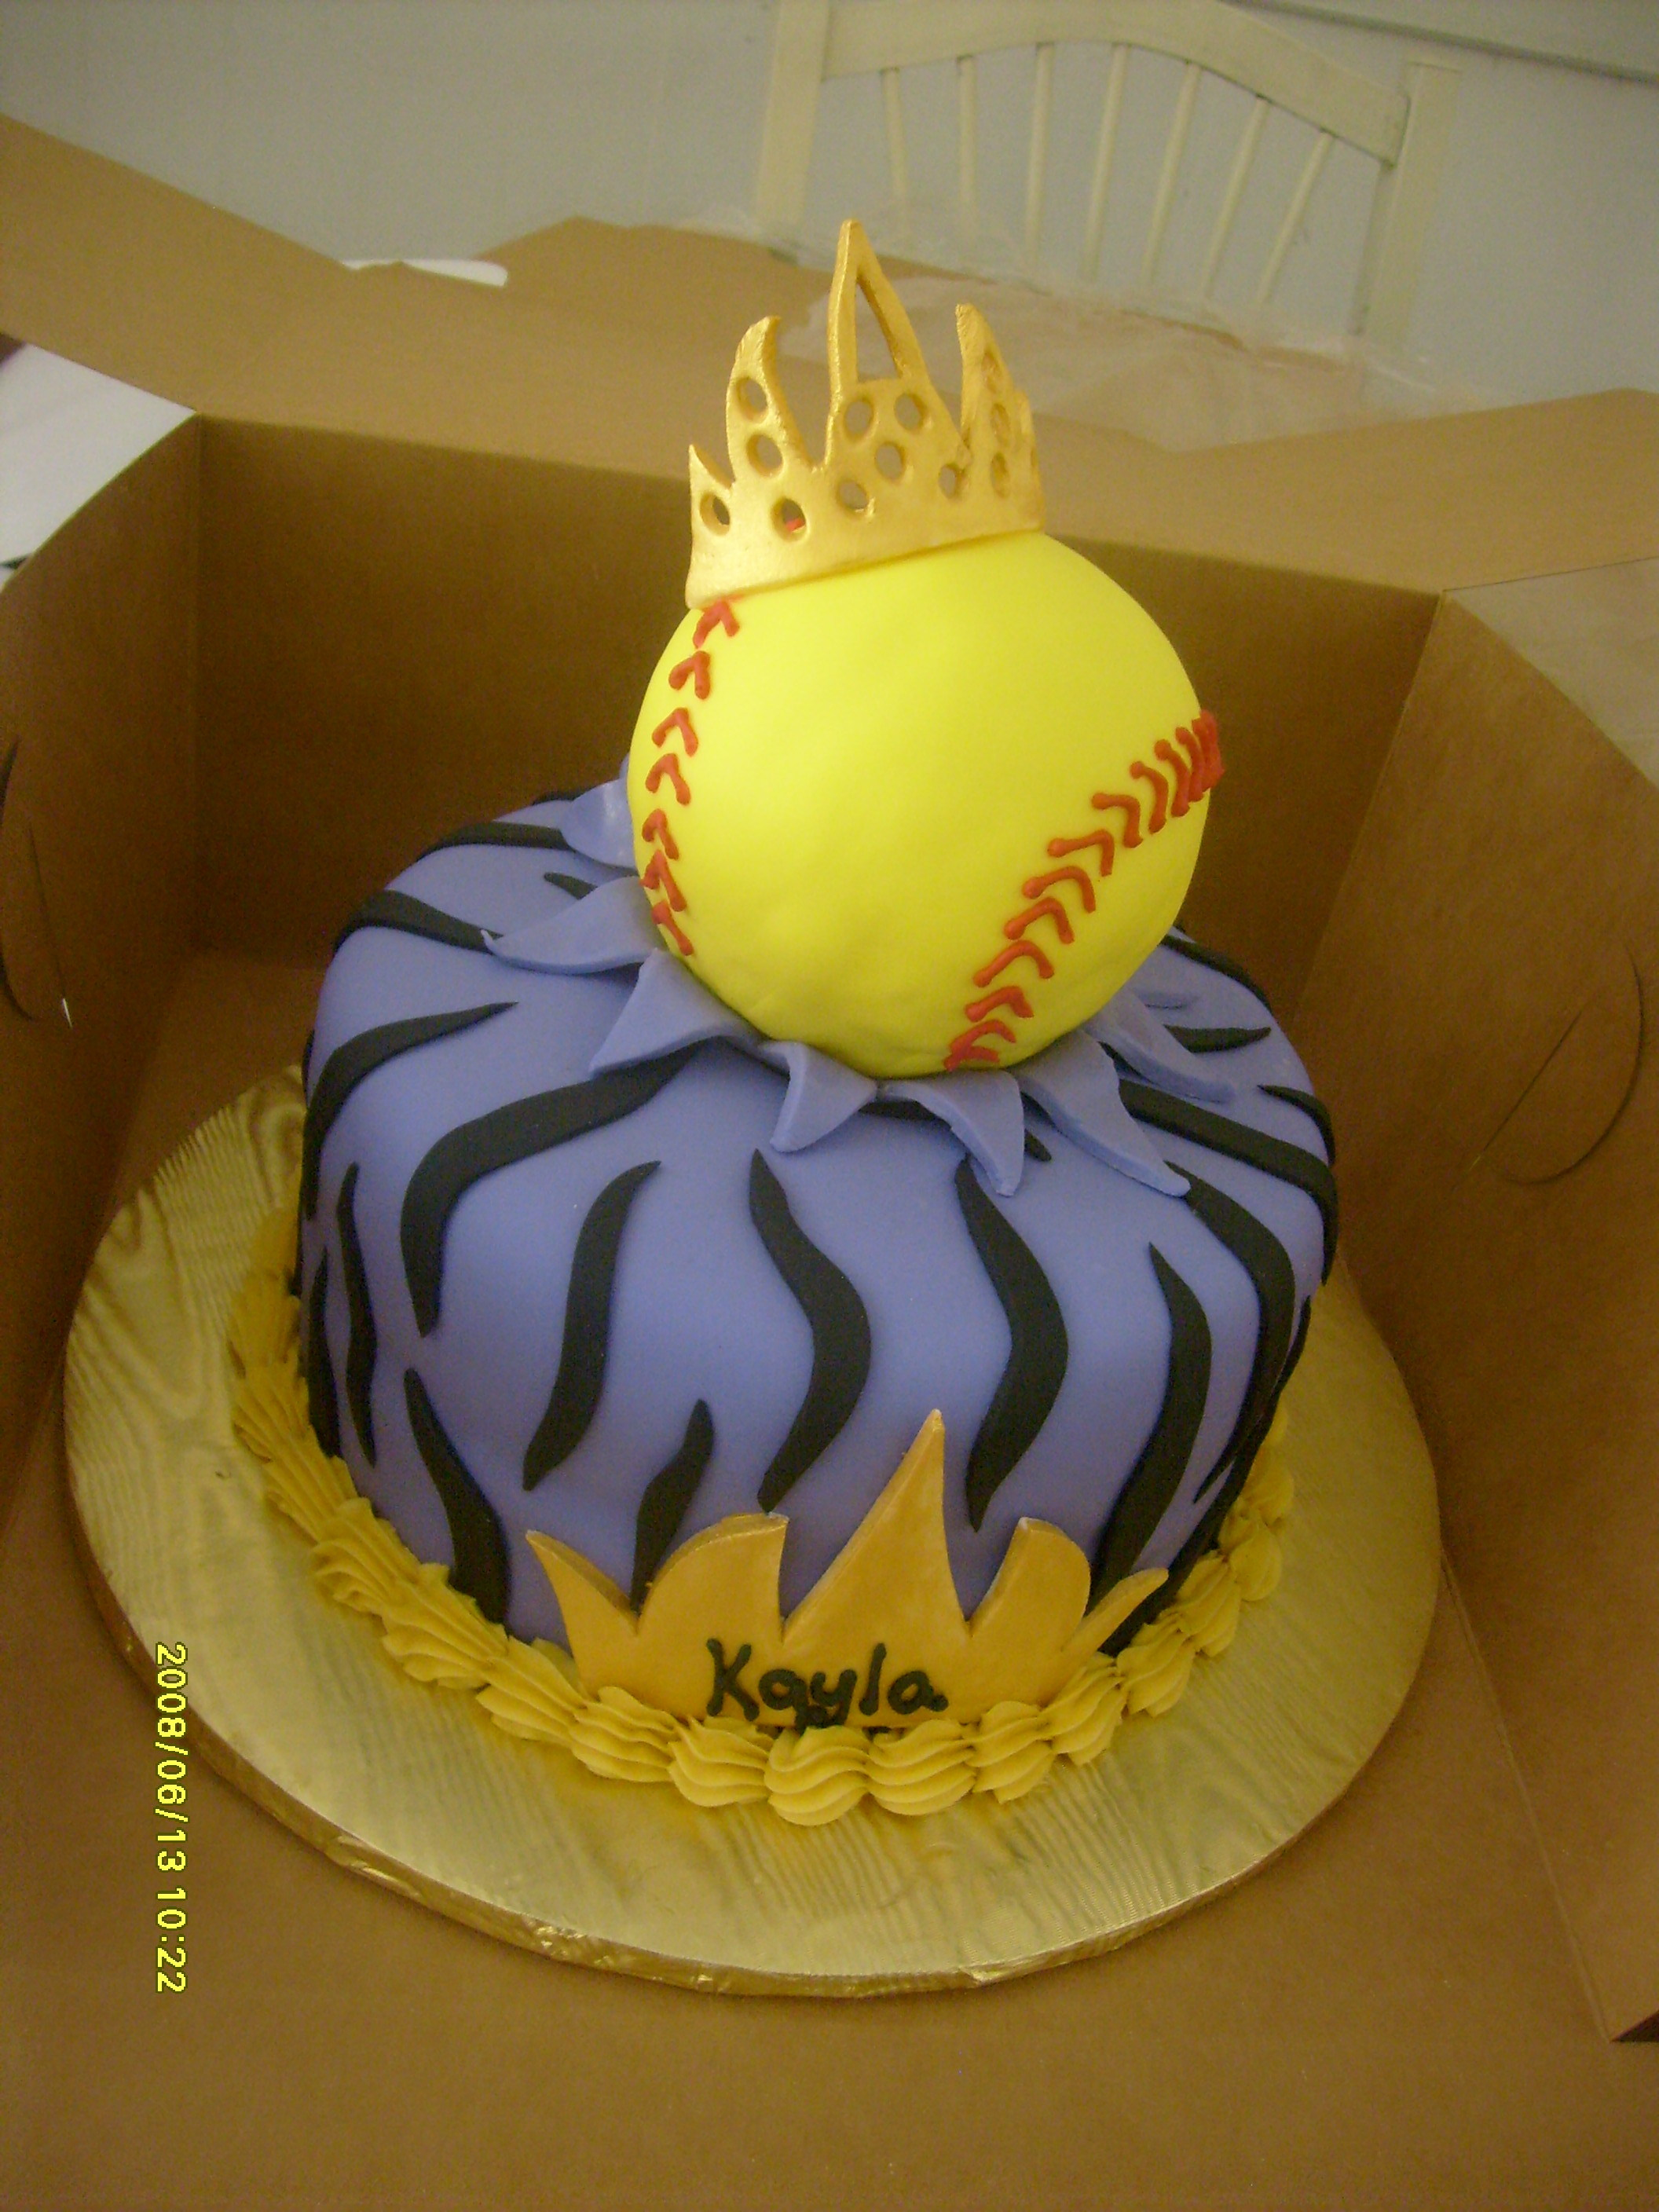 Pictures of Party Cakes by Margaret\'s Bakery in Birmingham, AL